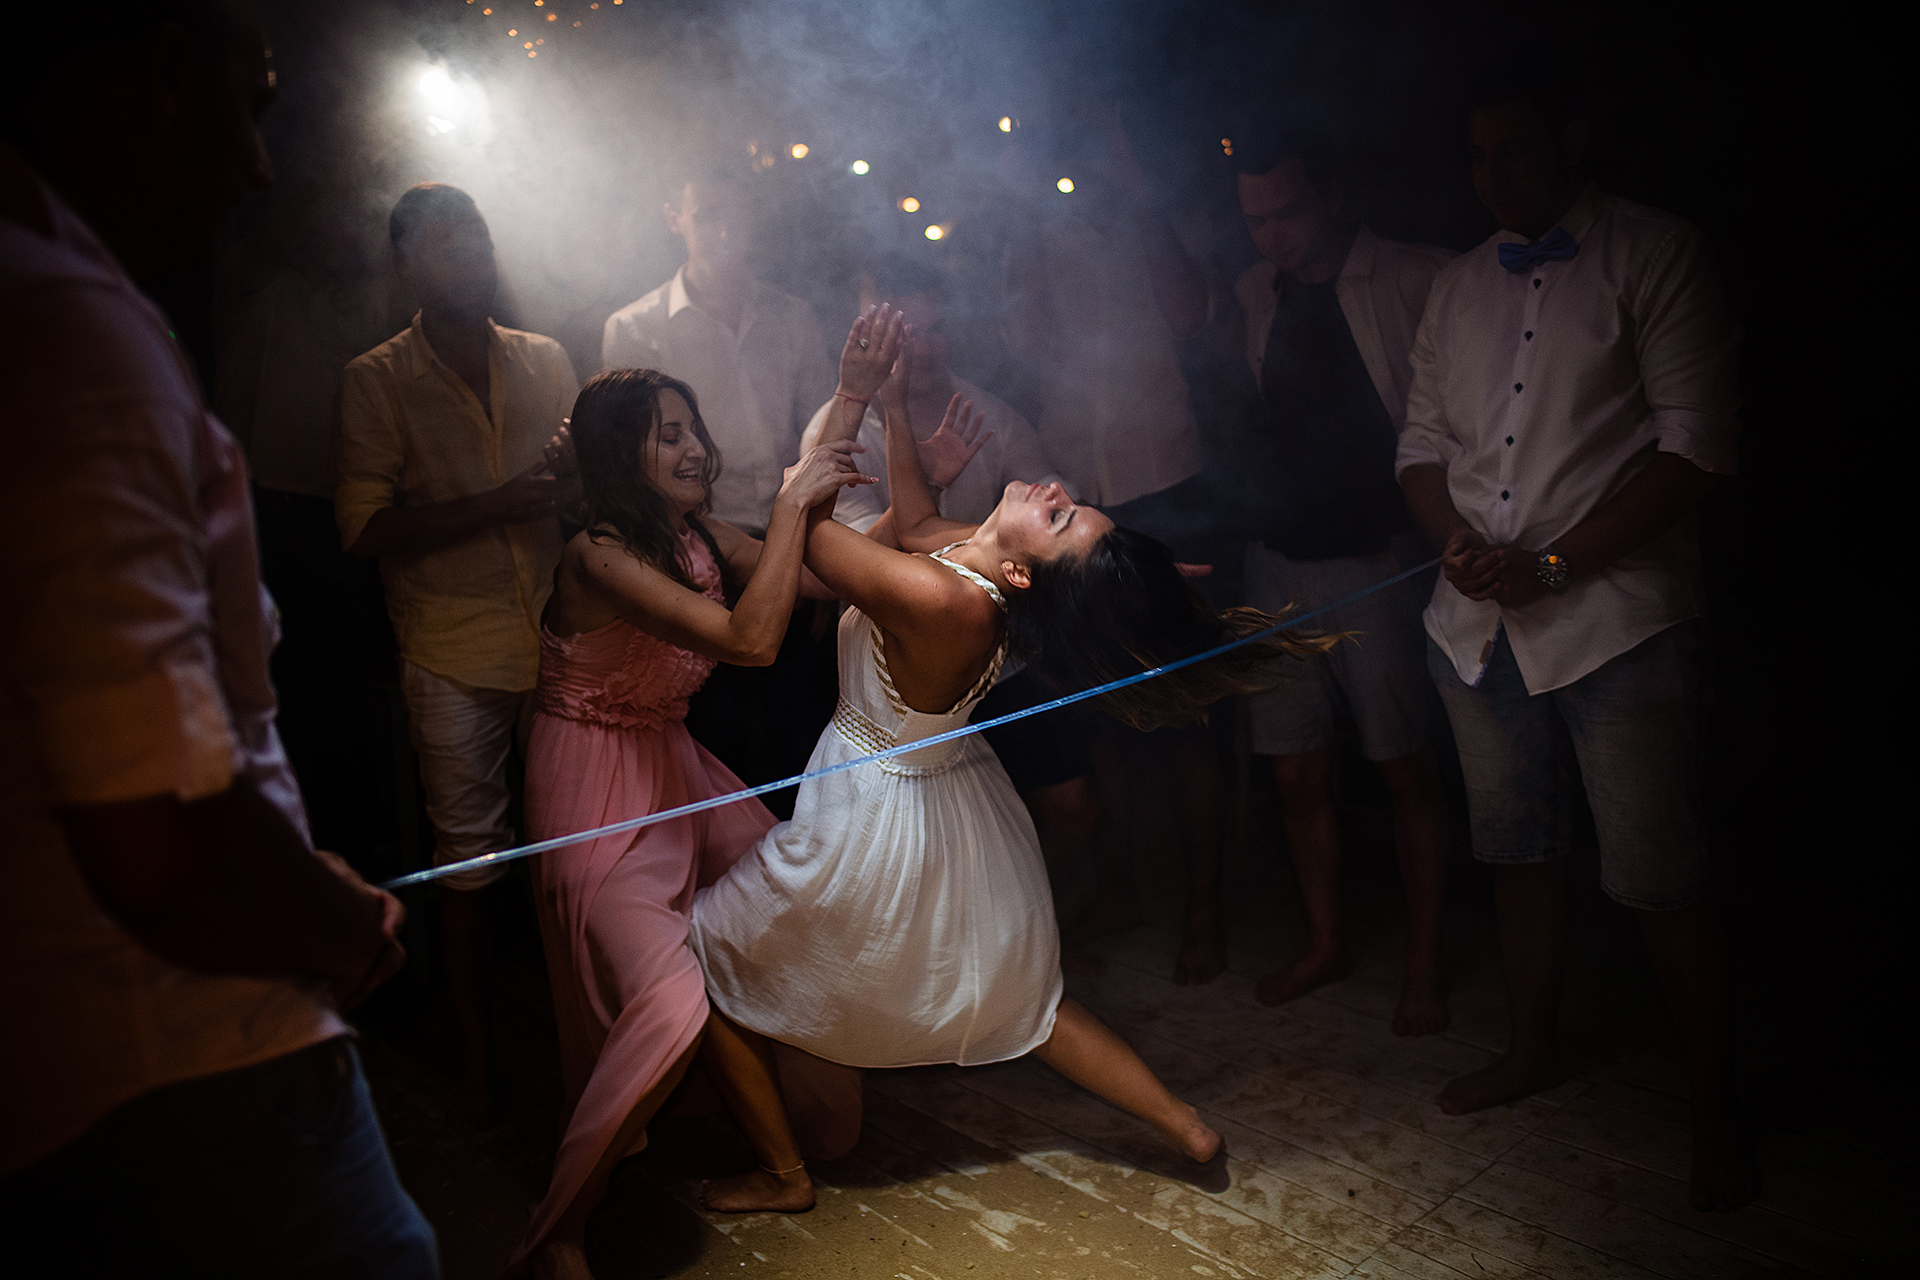 Bulgaria Beach Wedding Party Photo | The bride makes short work of the limbo pole